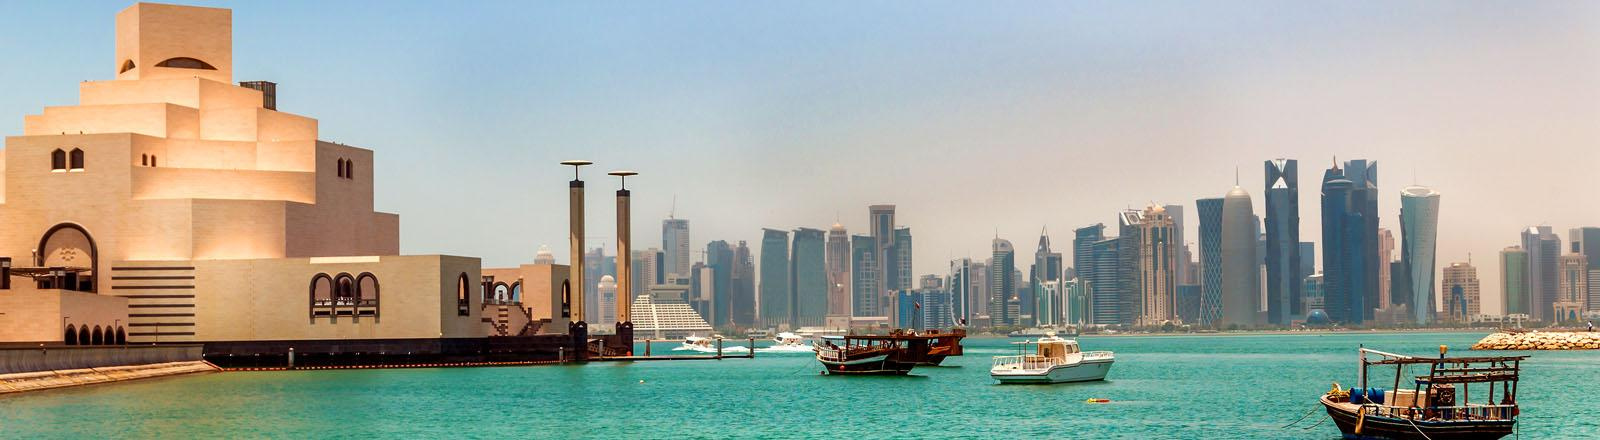 view of Doha city